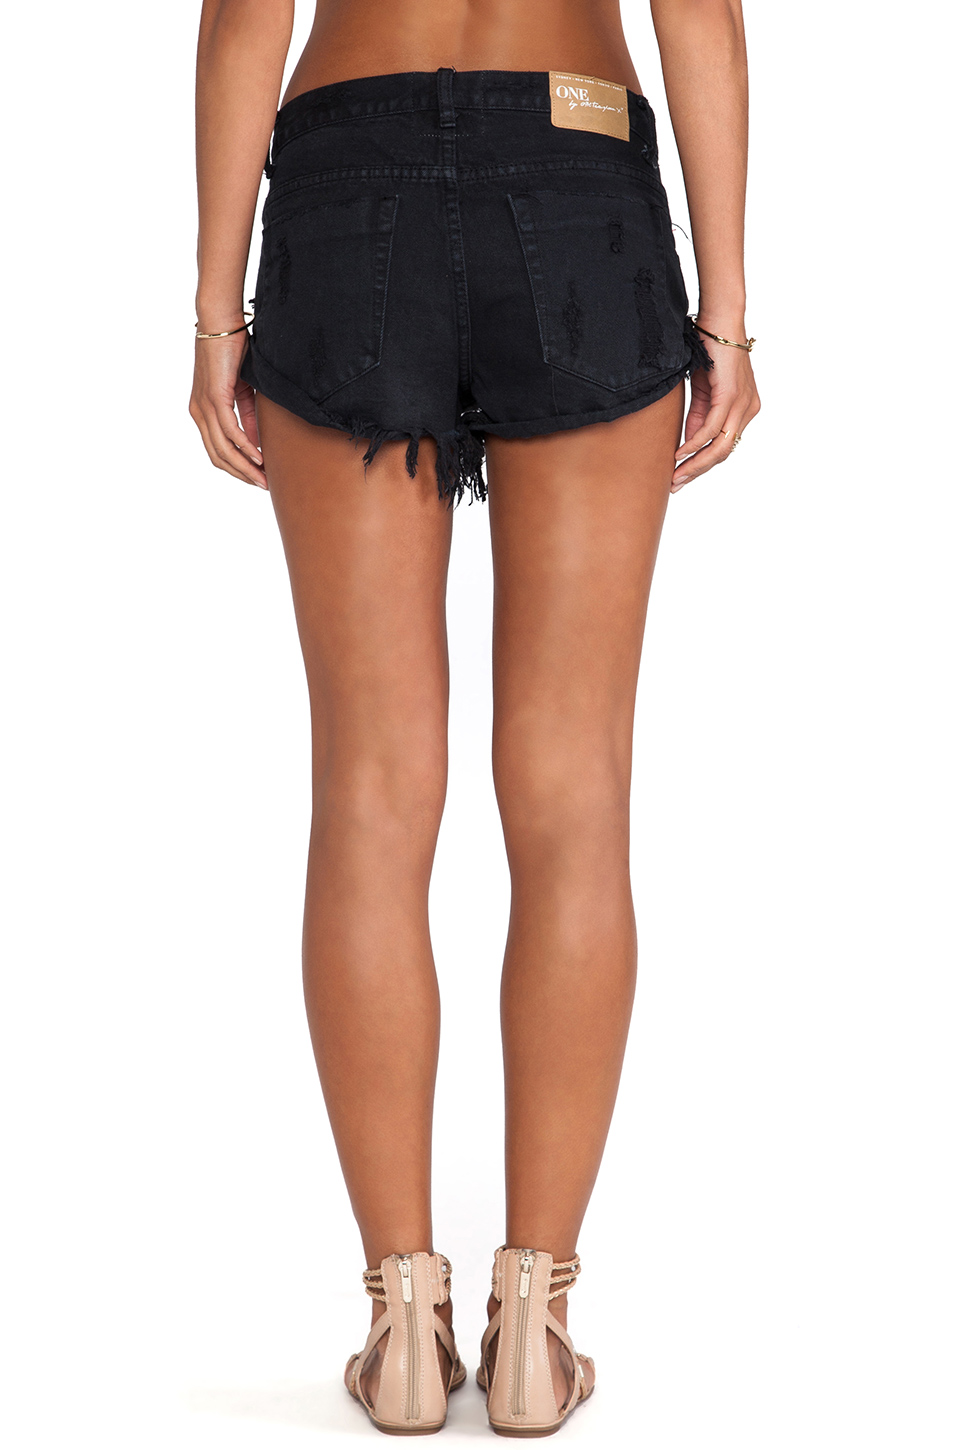 one teaspoon bandits jean shorts in fox black from. Black Bedroom Furniture Sets. Home Design Ideas